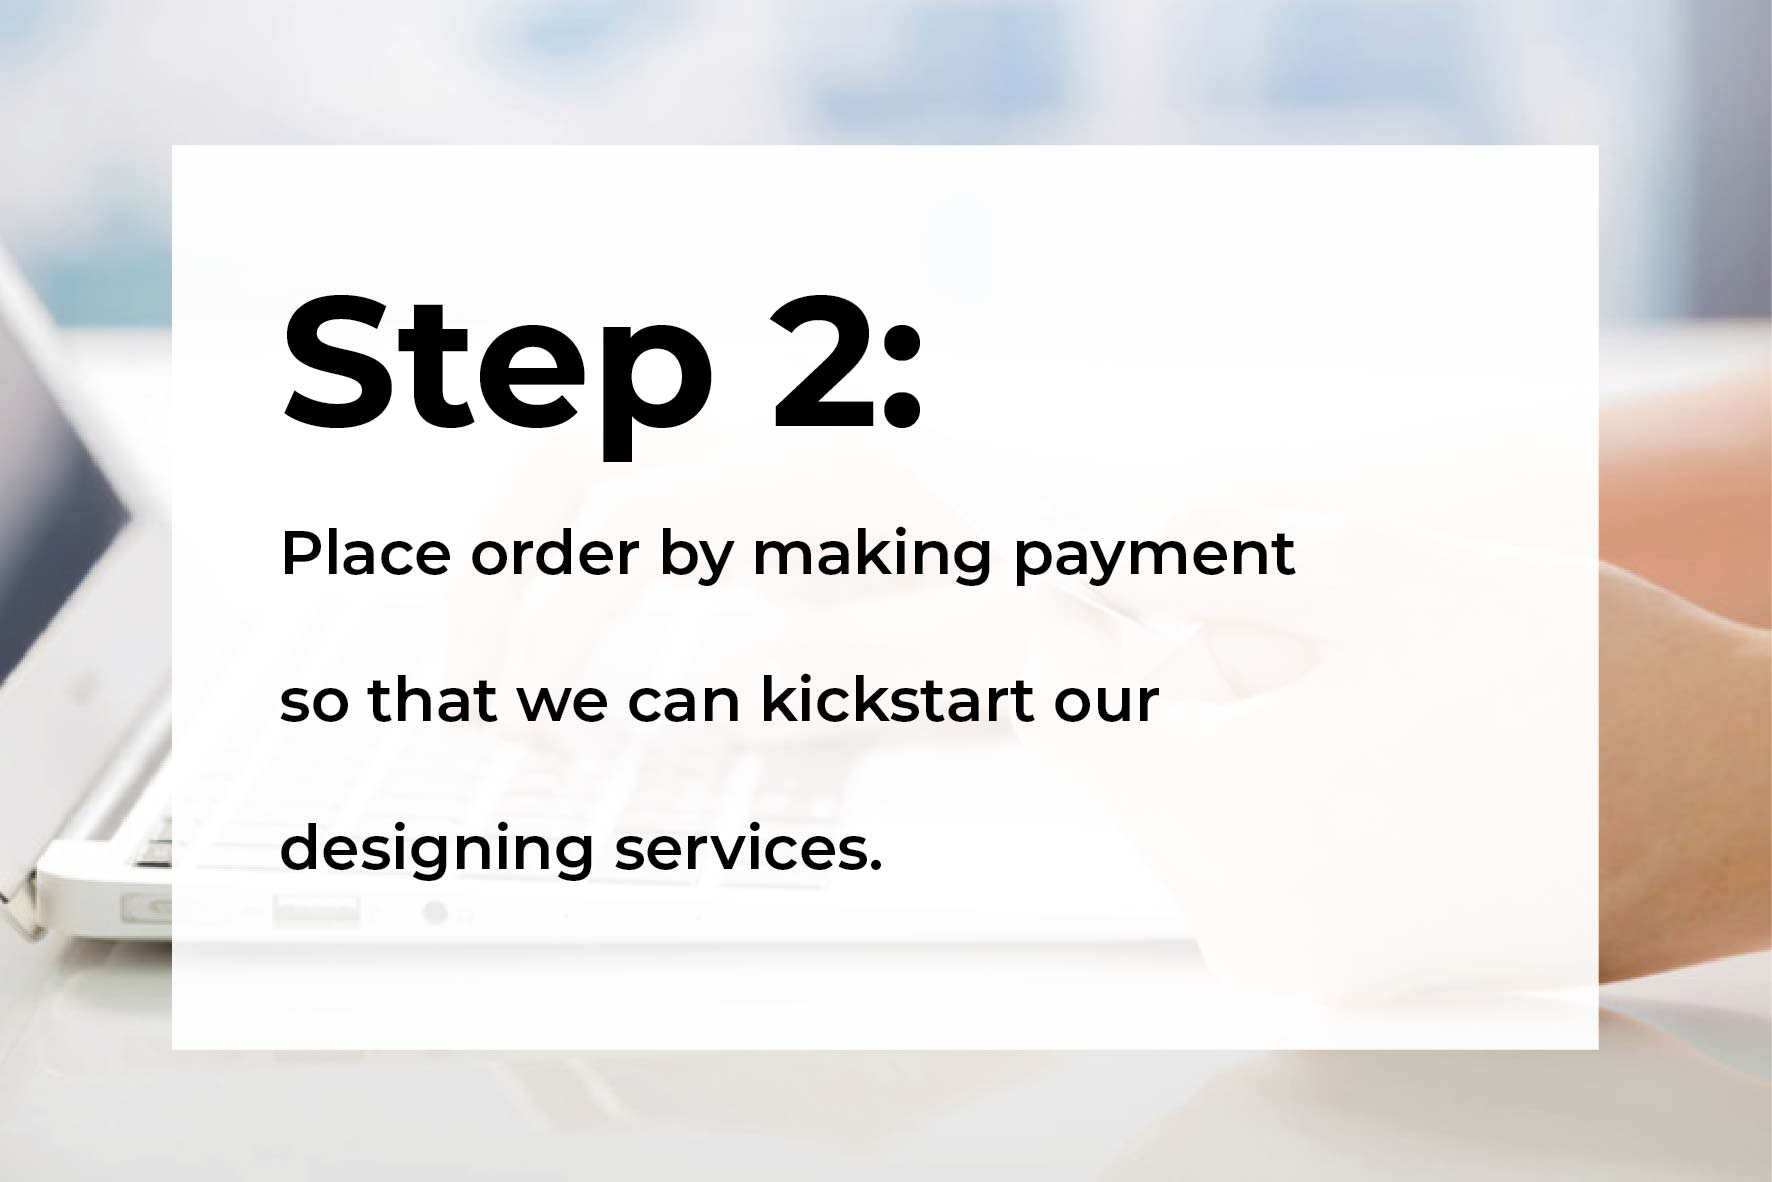 Step 2: Place order by making payment.